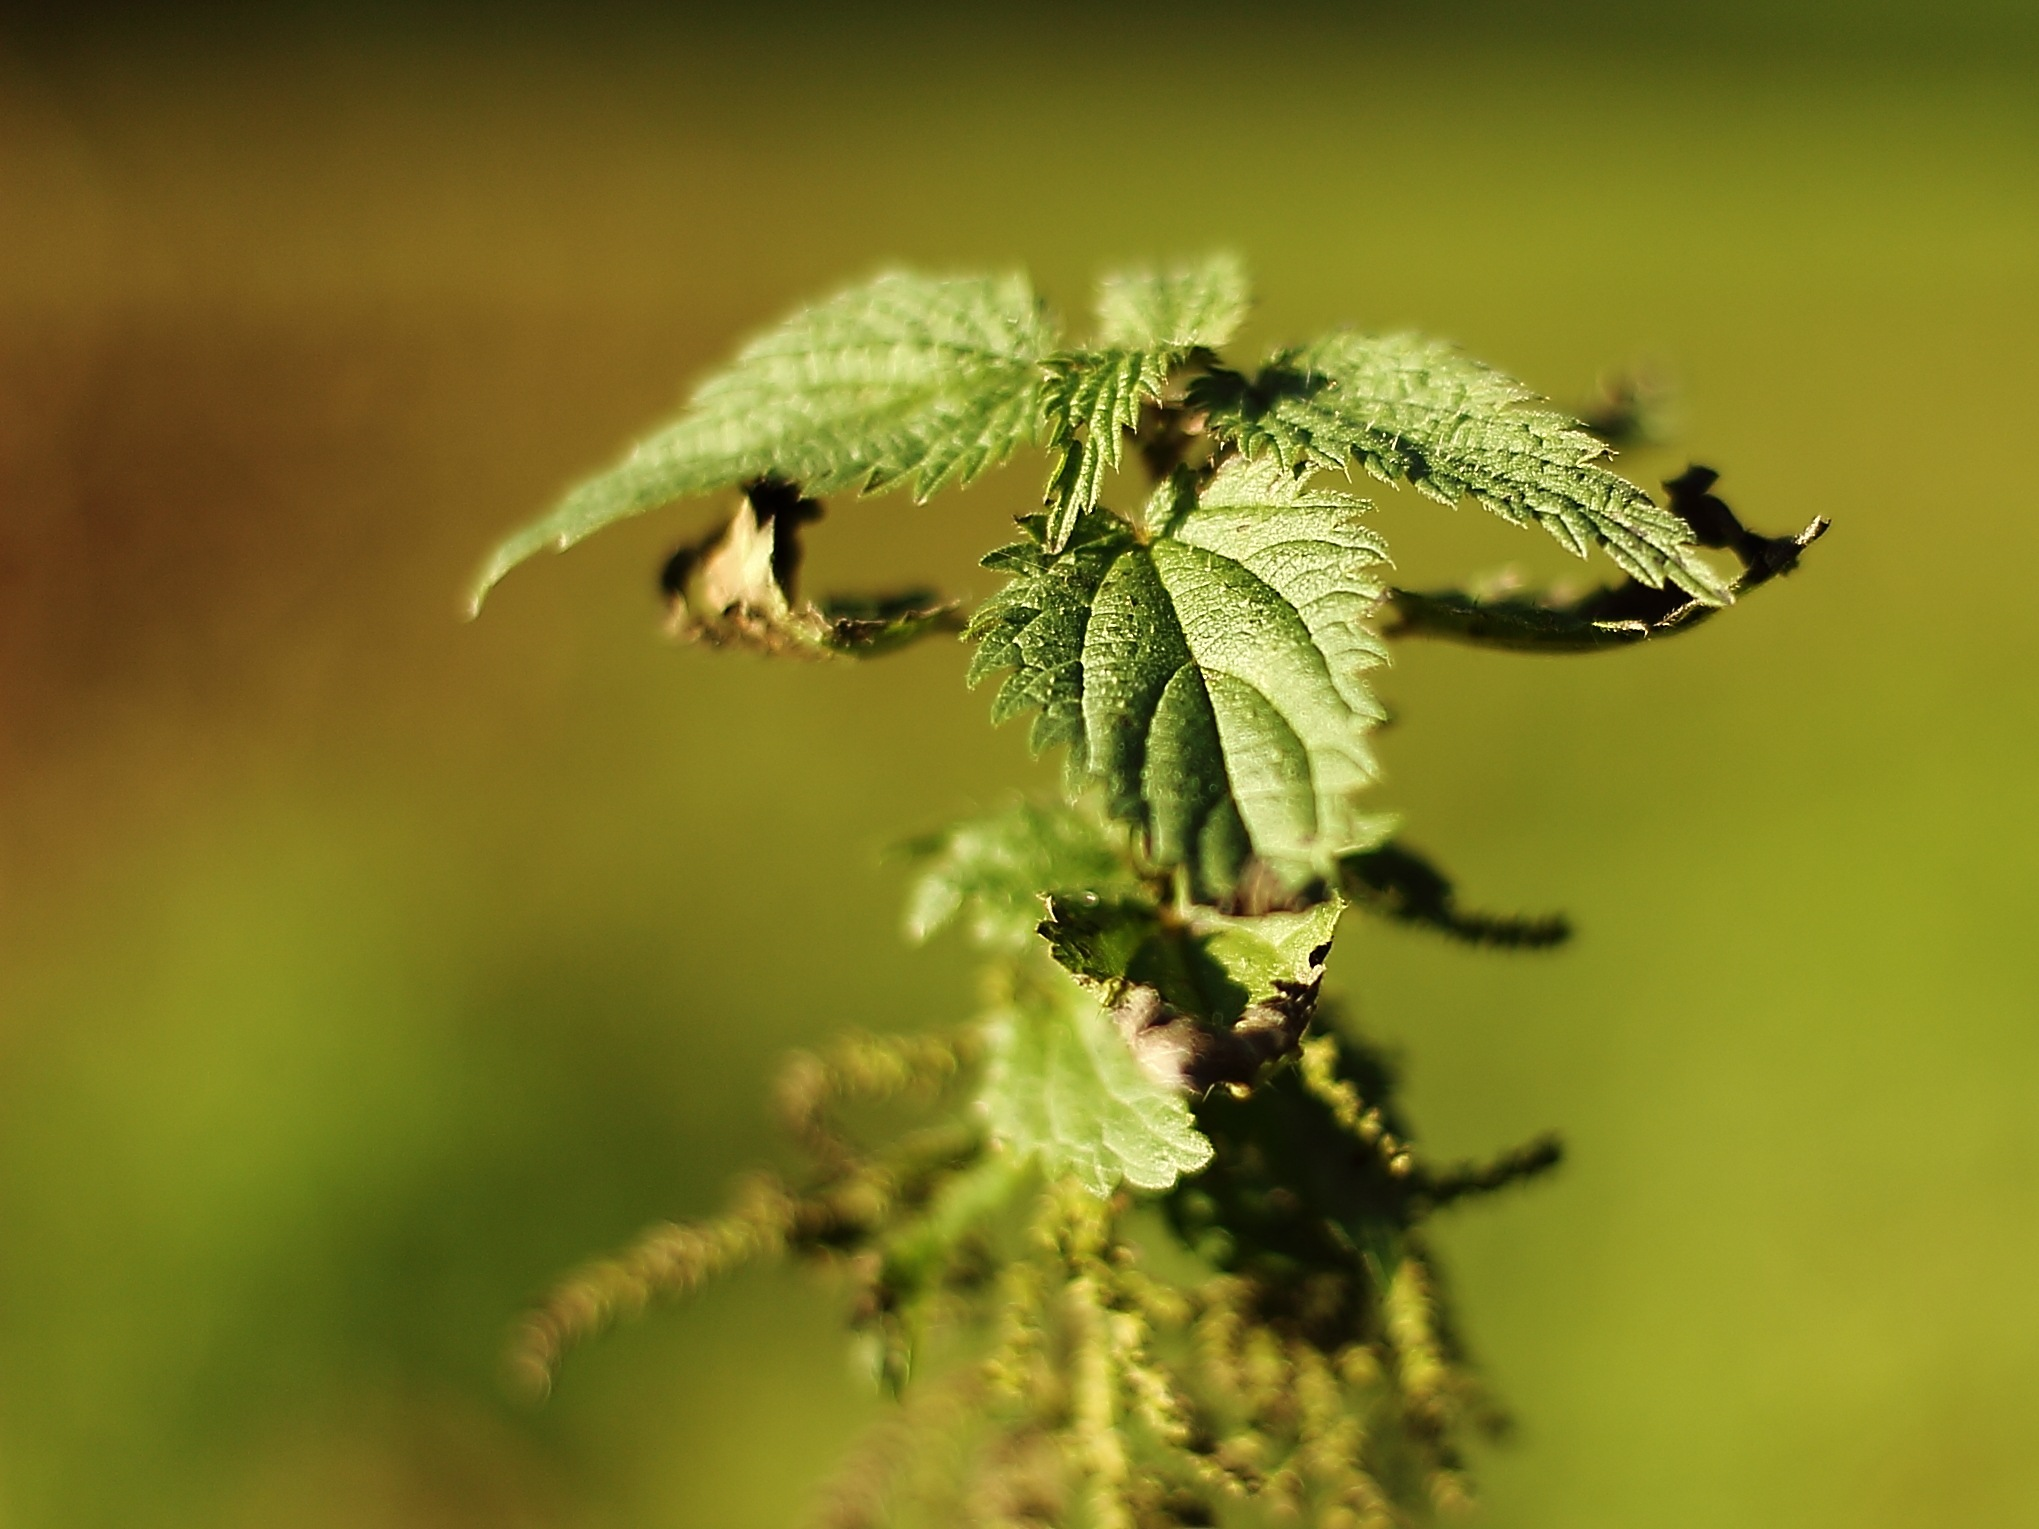 Stinging Nettle - keep clear! by Thomas Lenz